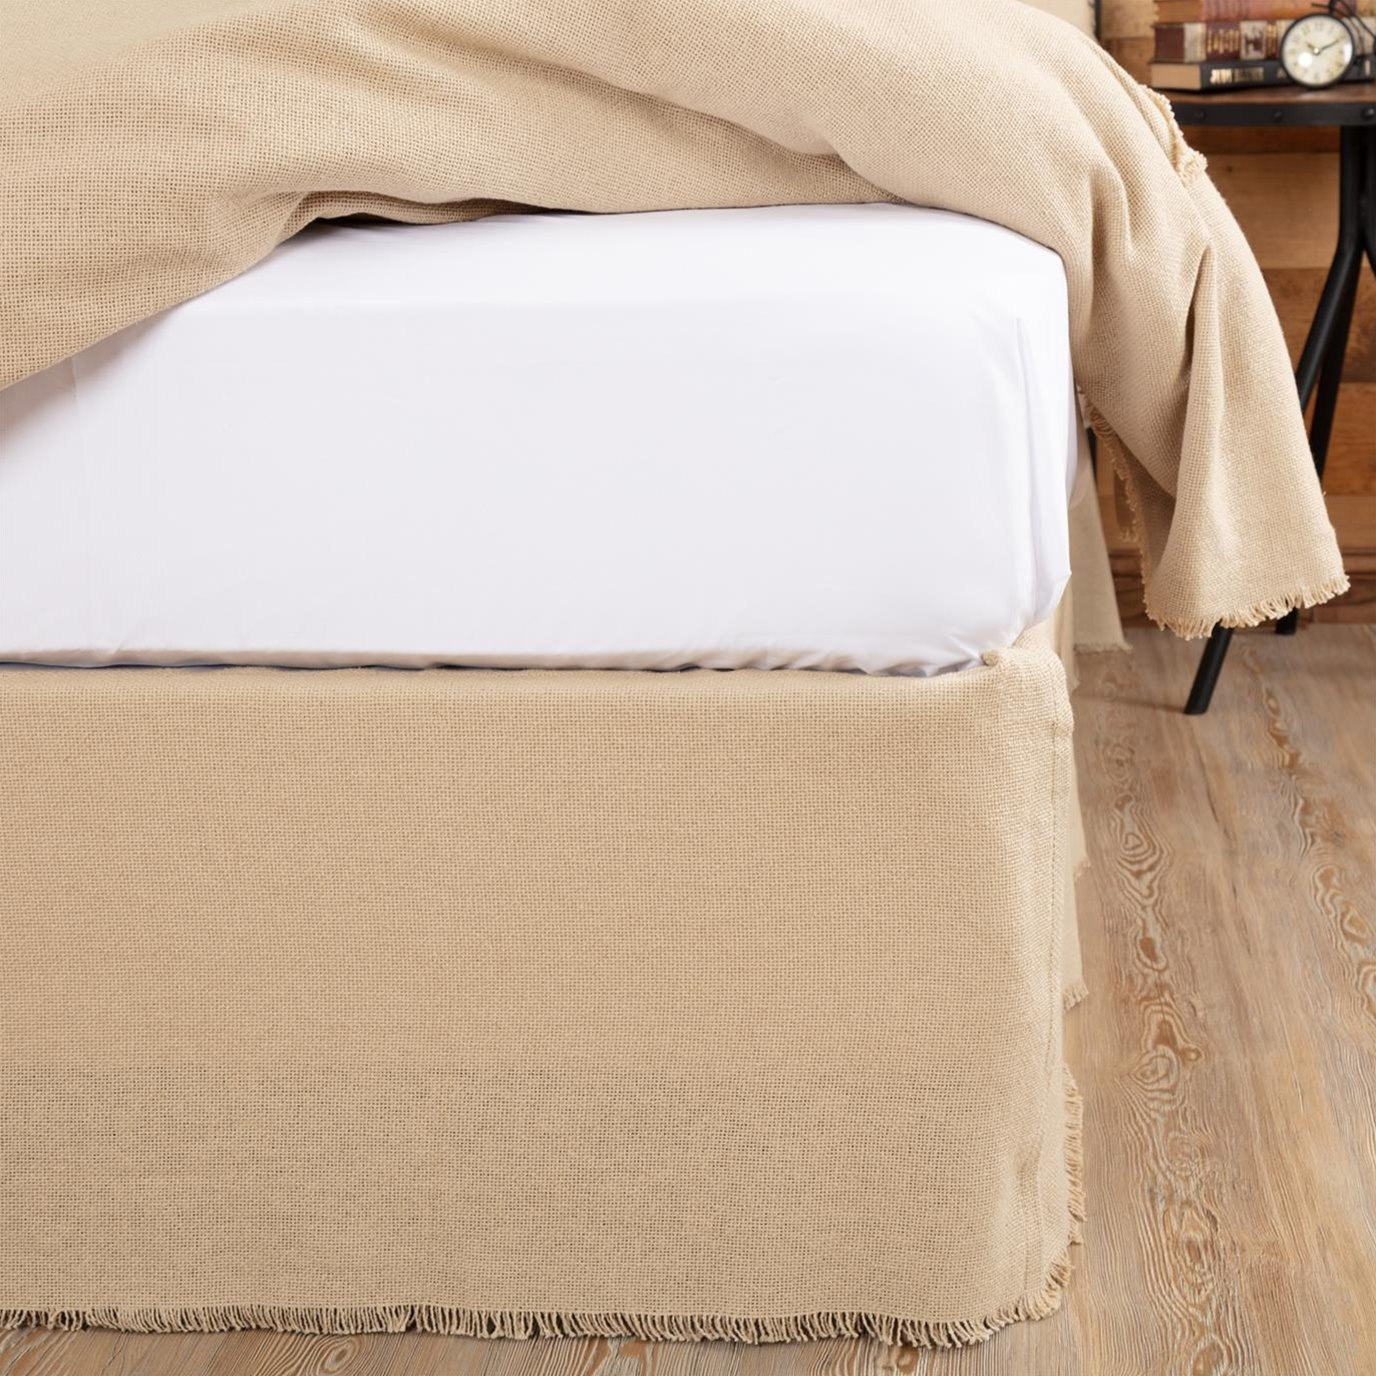 Burlap Vintage Fringed King Bed Skirt 78x80x16